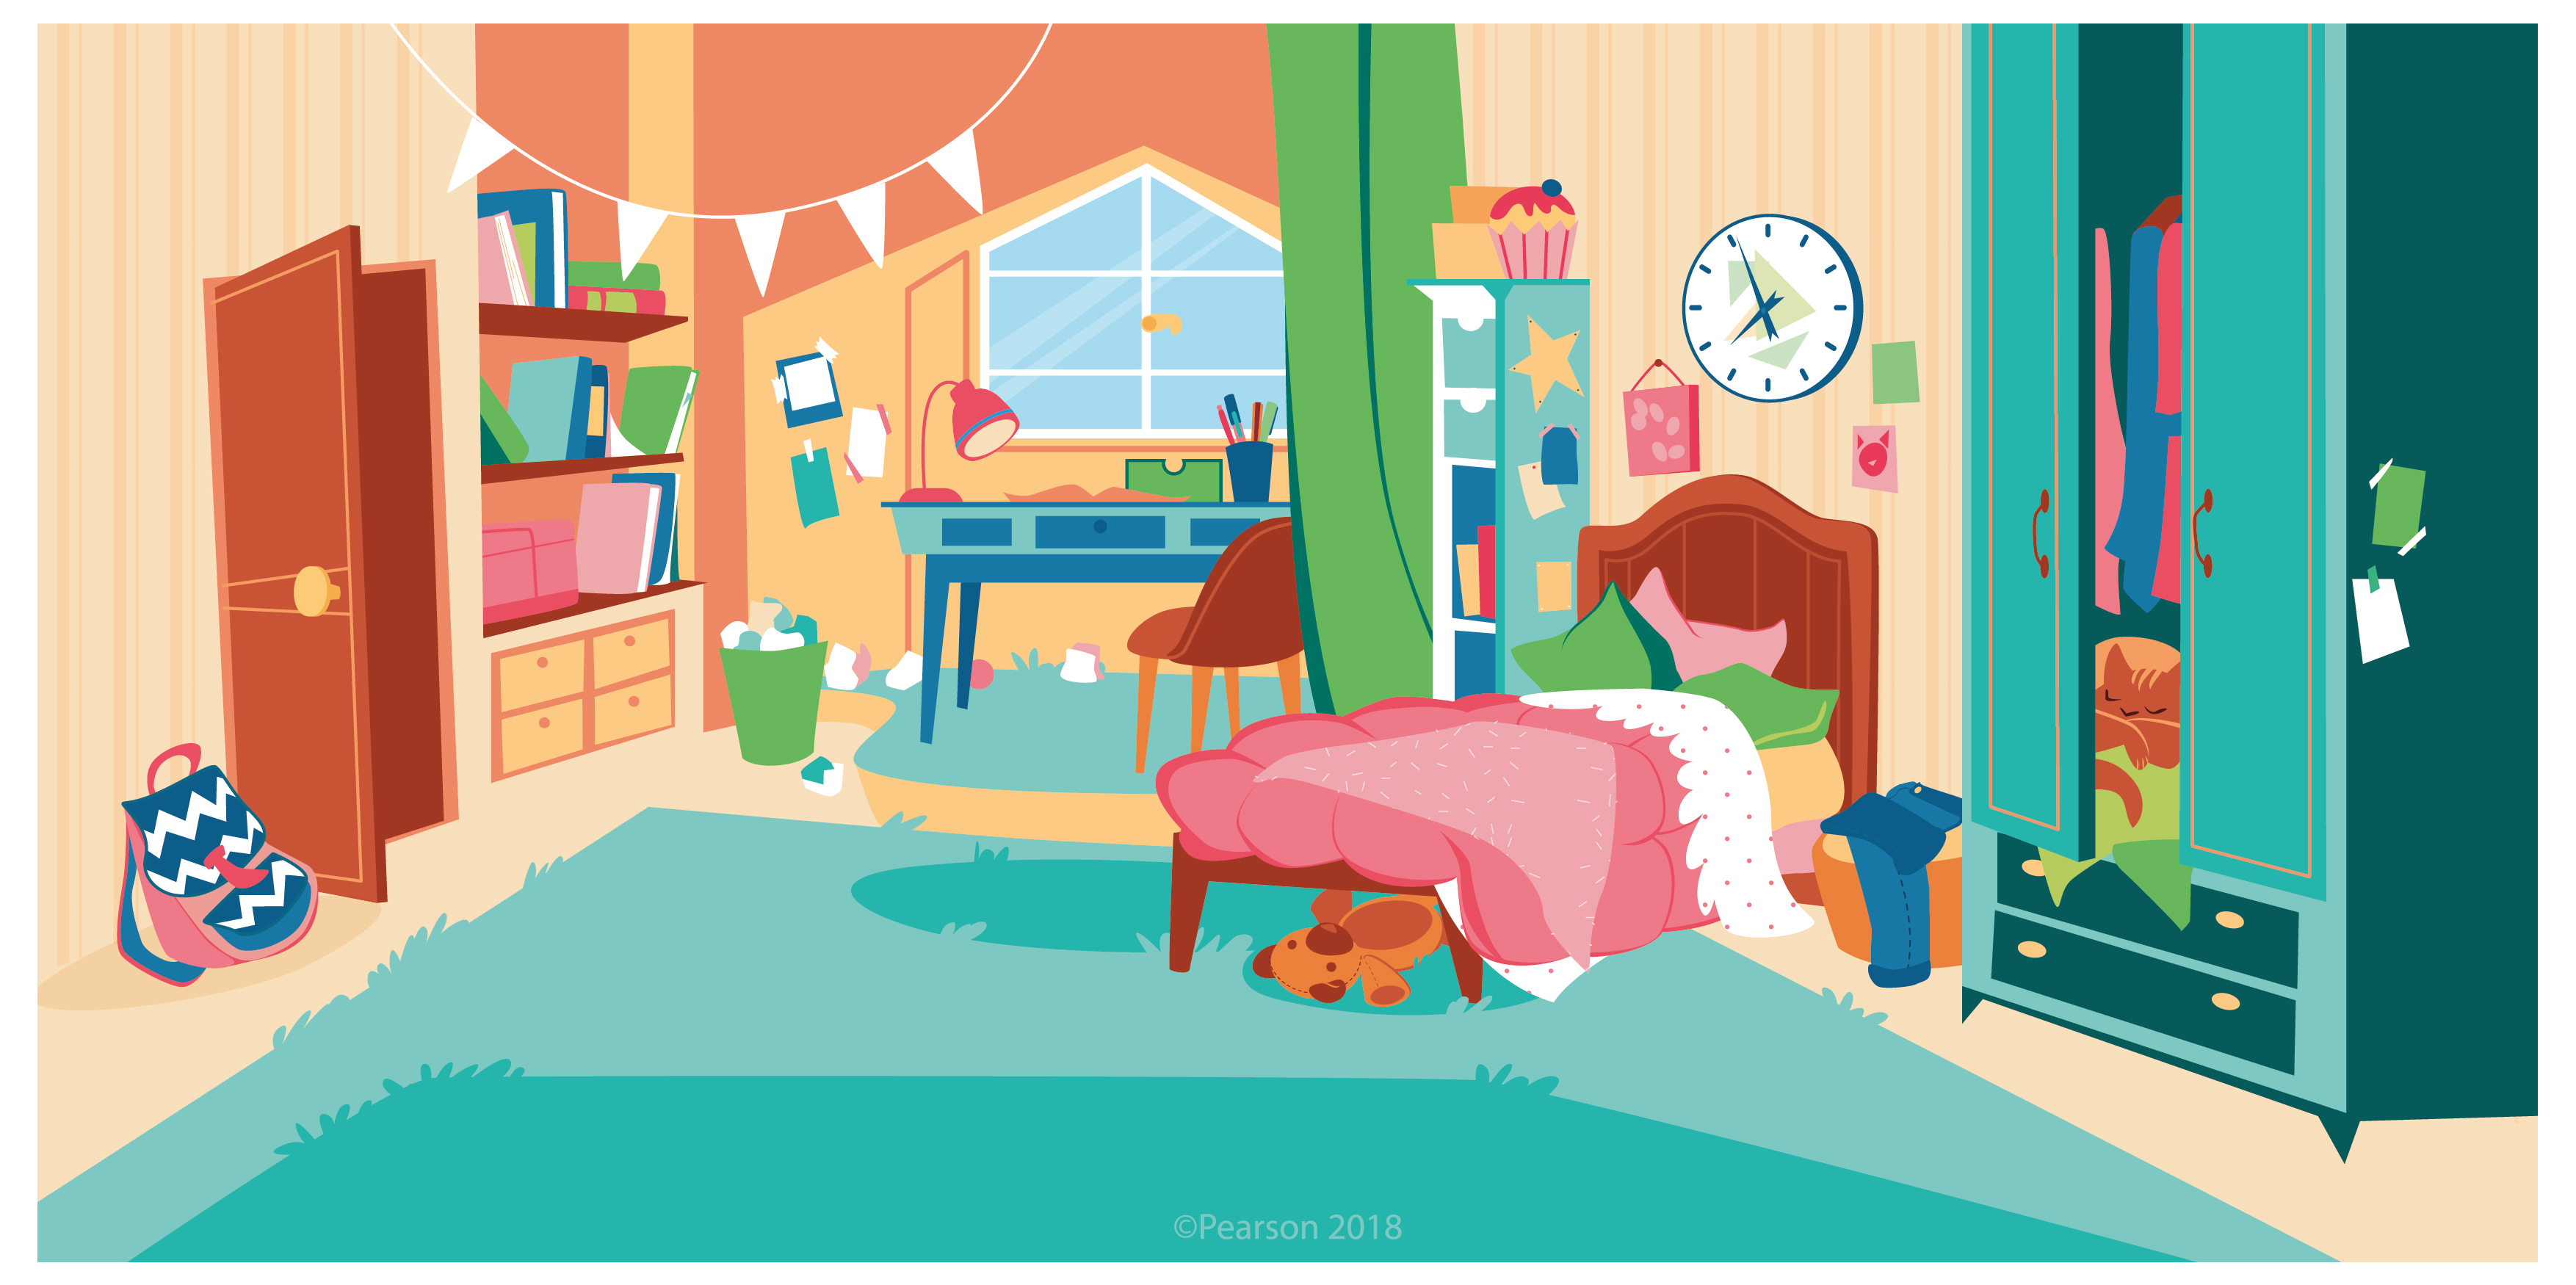 illustration of a girl's bedroom: comfortable bed, a cat in the wardrobe, a backpack on the floor, a desk under the window